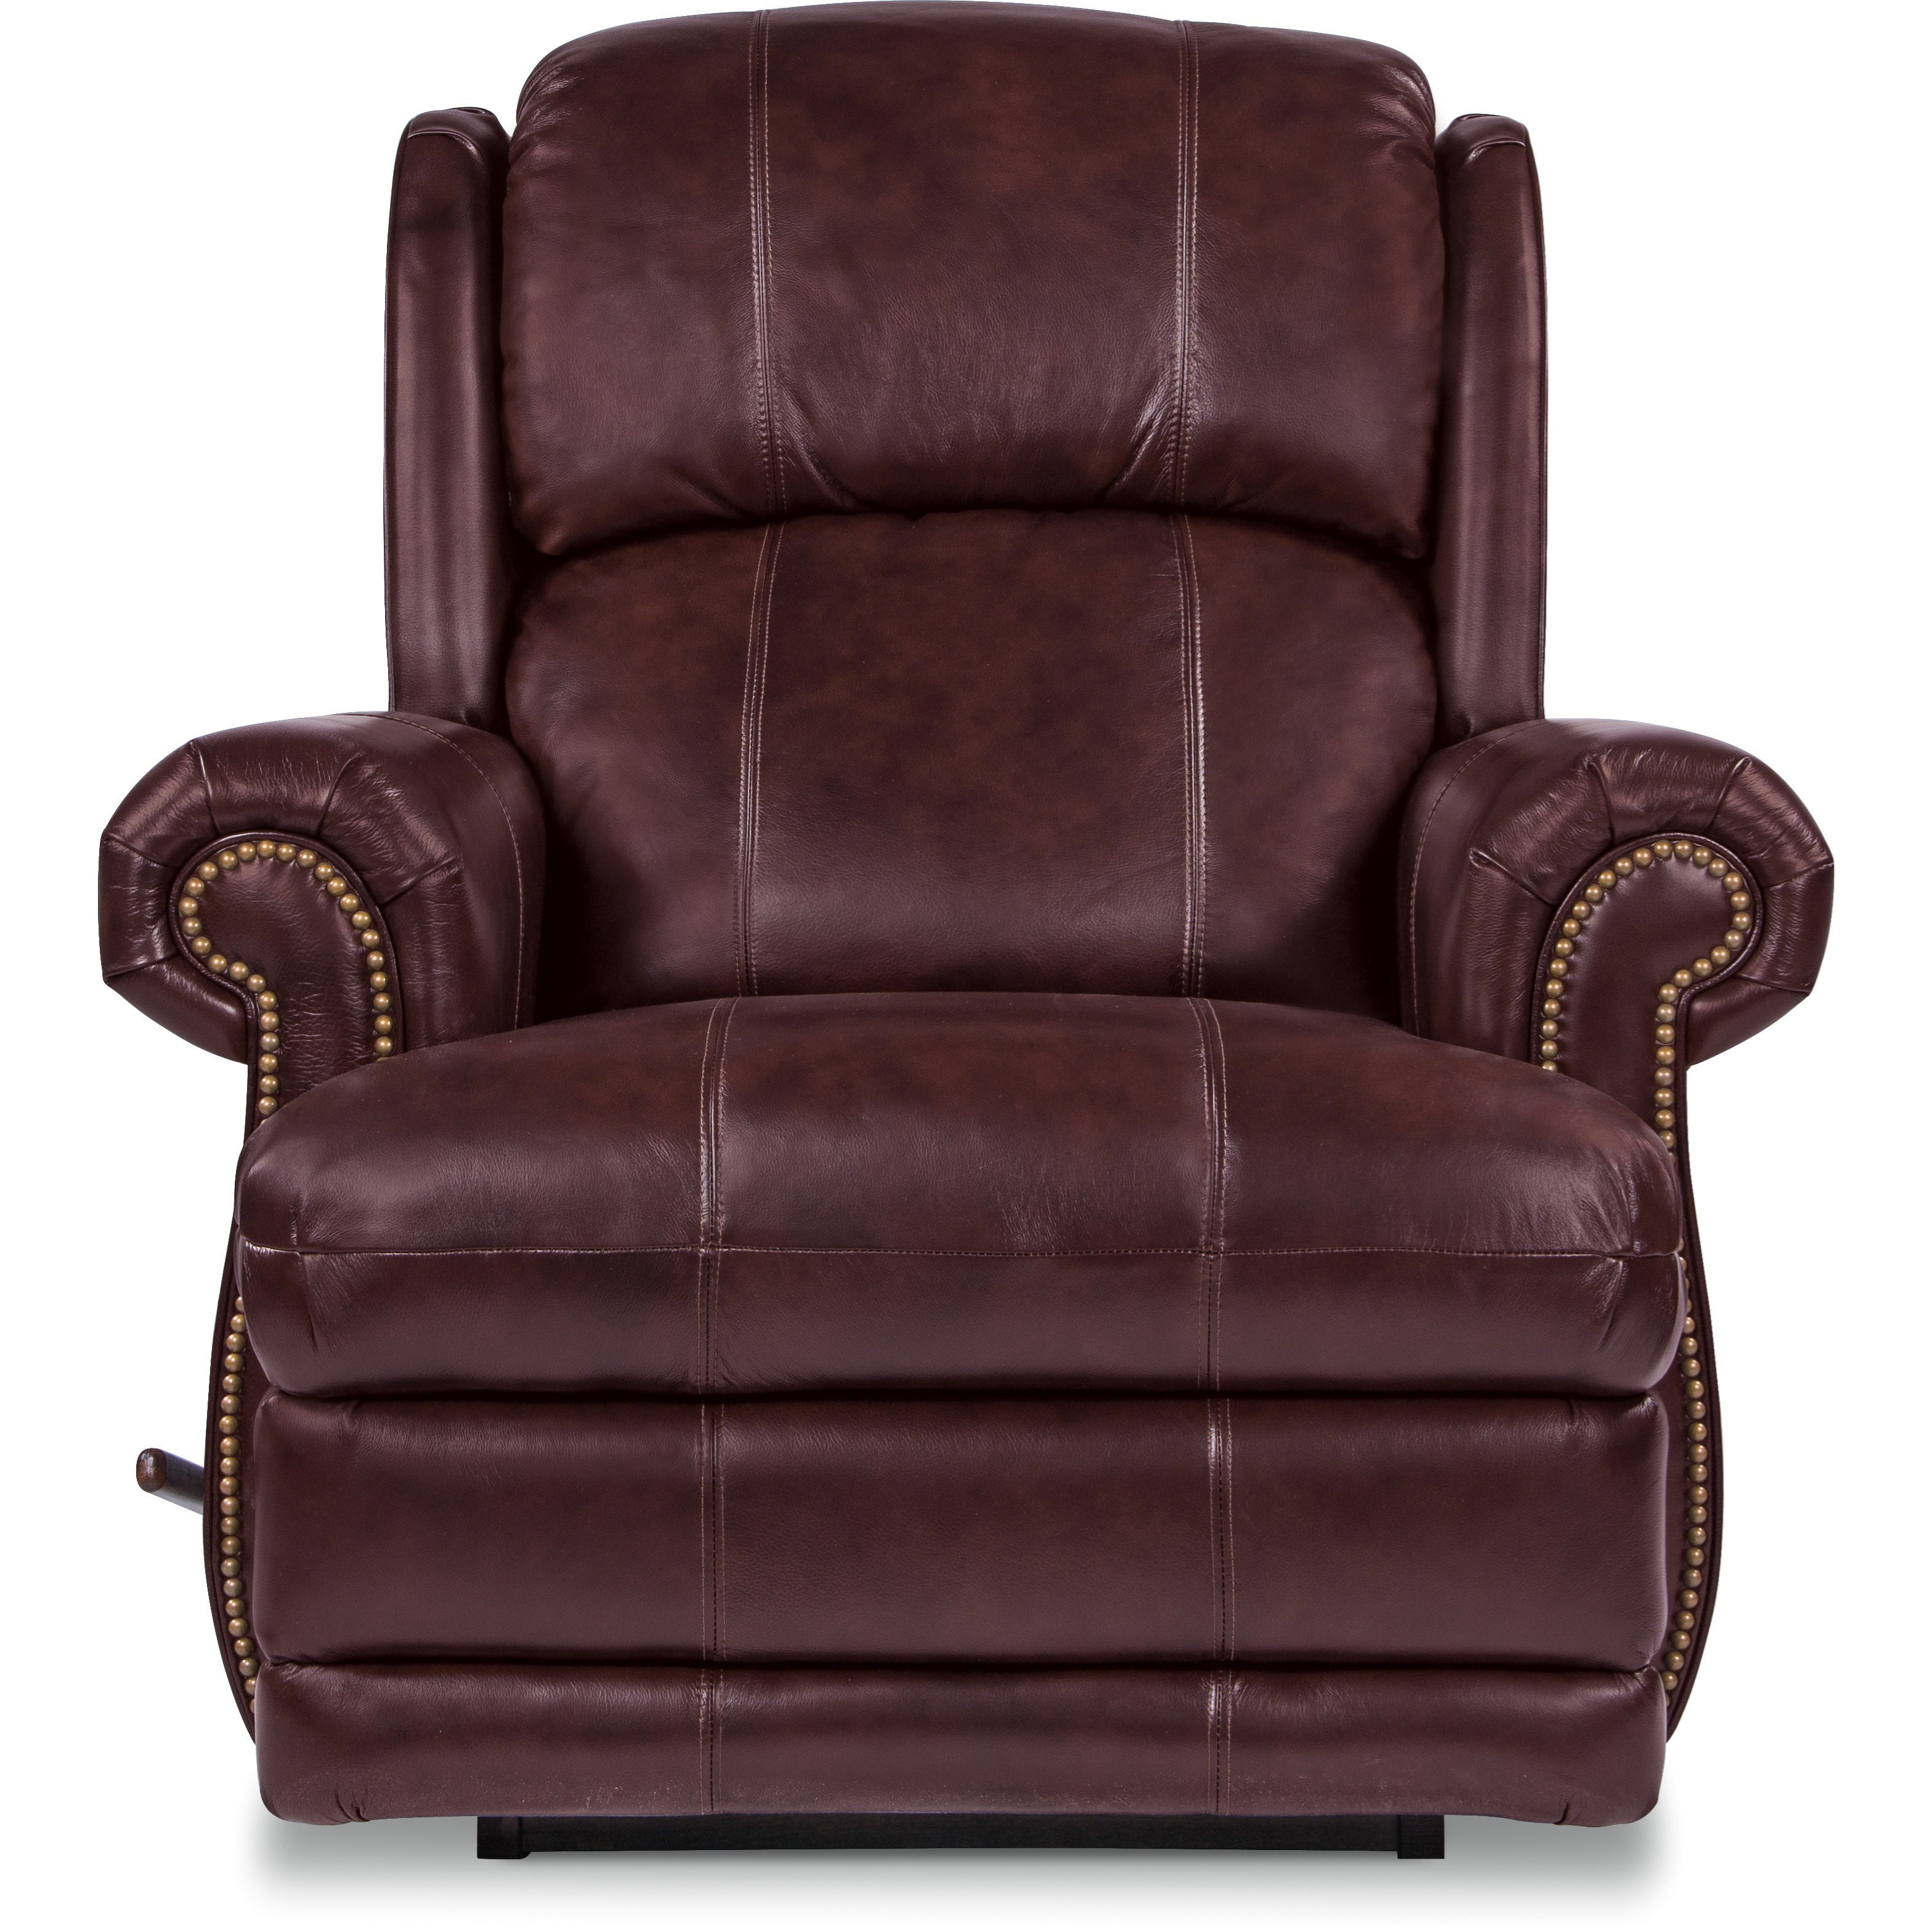 Kirkwood Rocking Recliner by La-Z-Boy at Bennett's Furniture and Mattresses